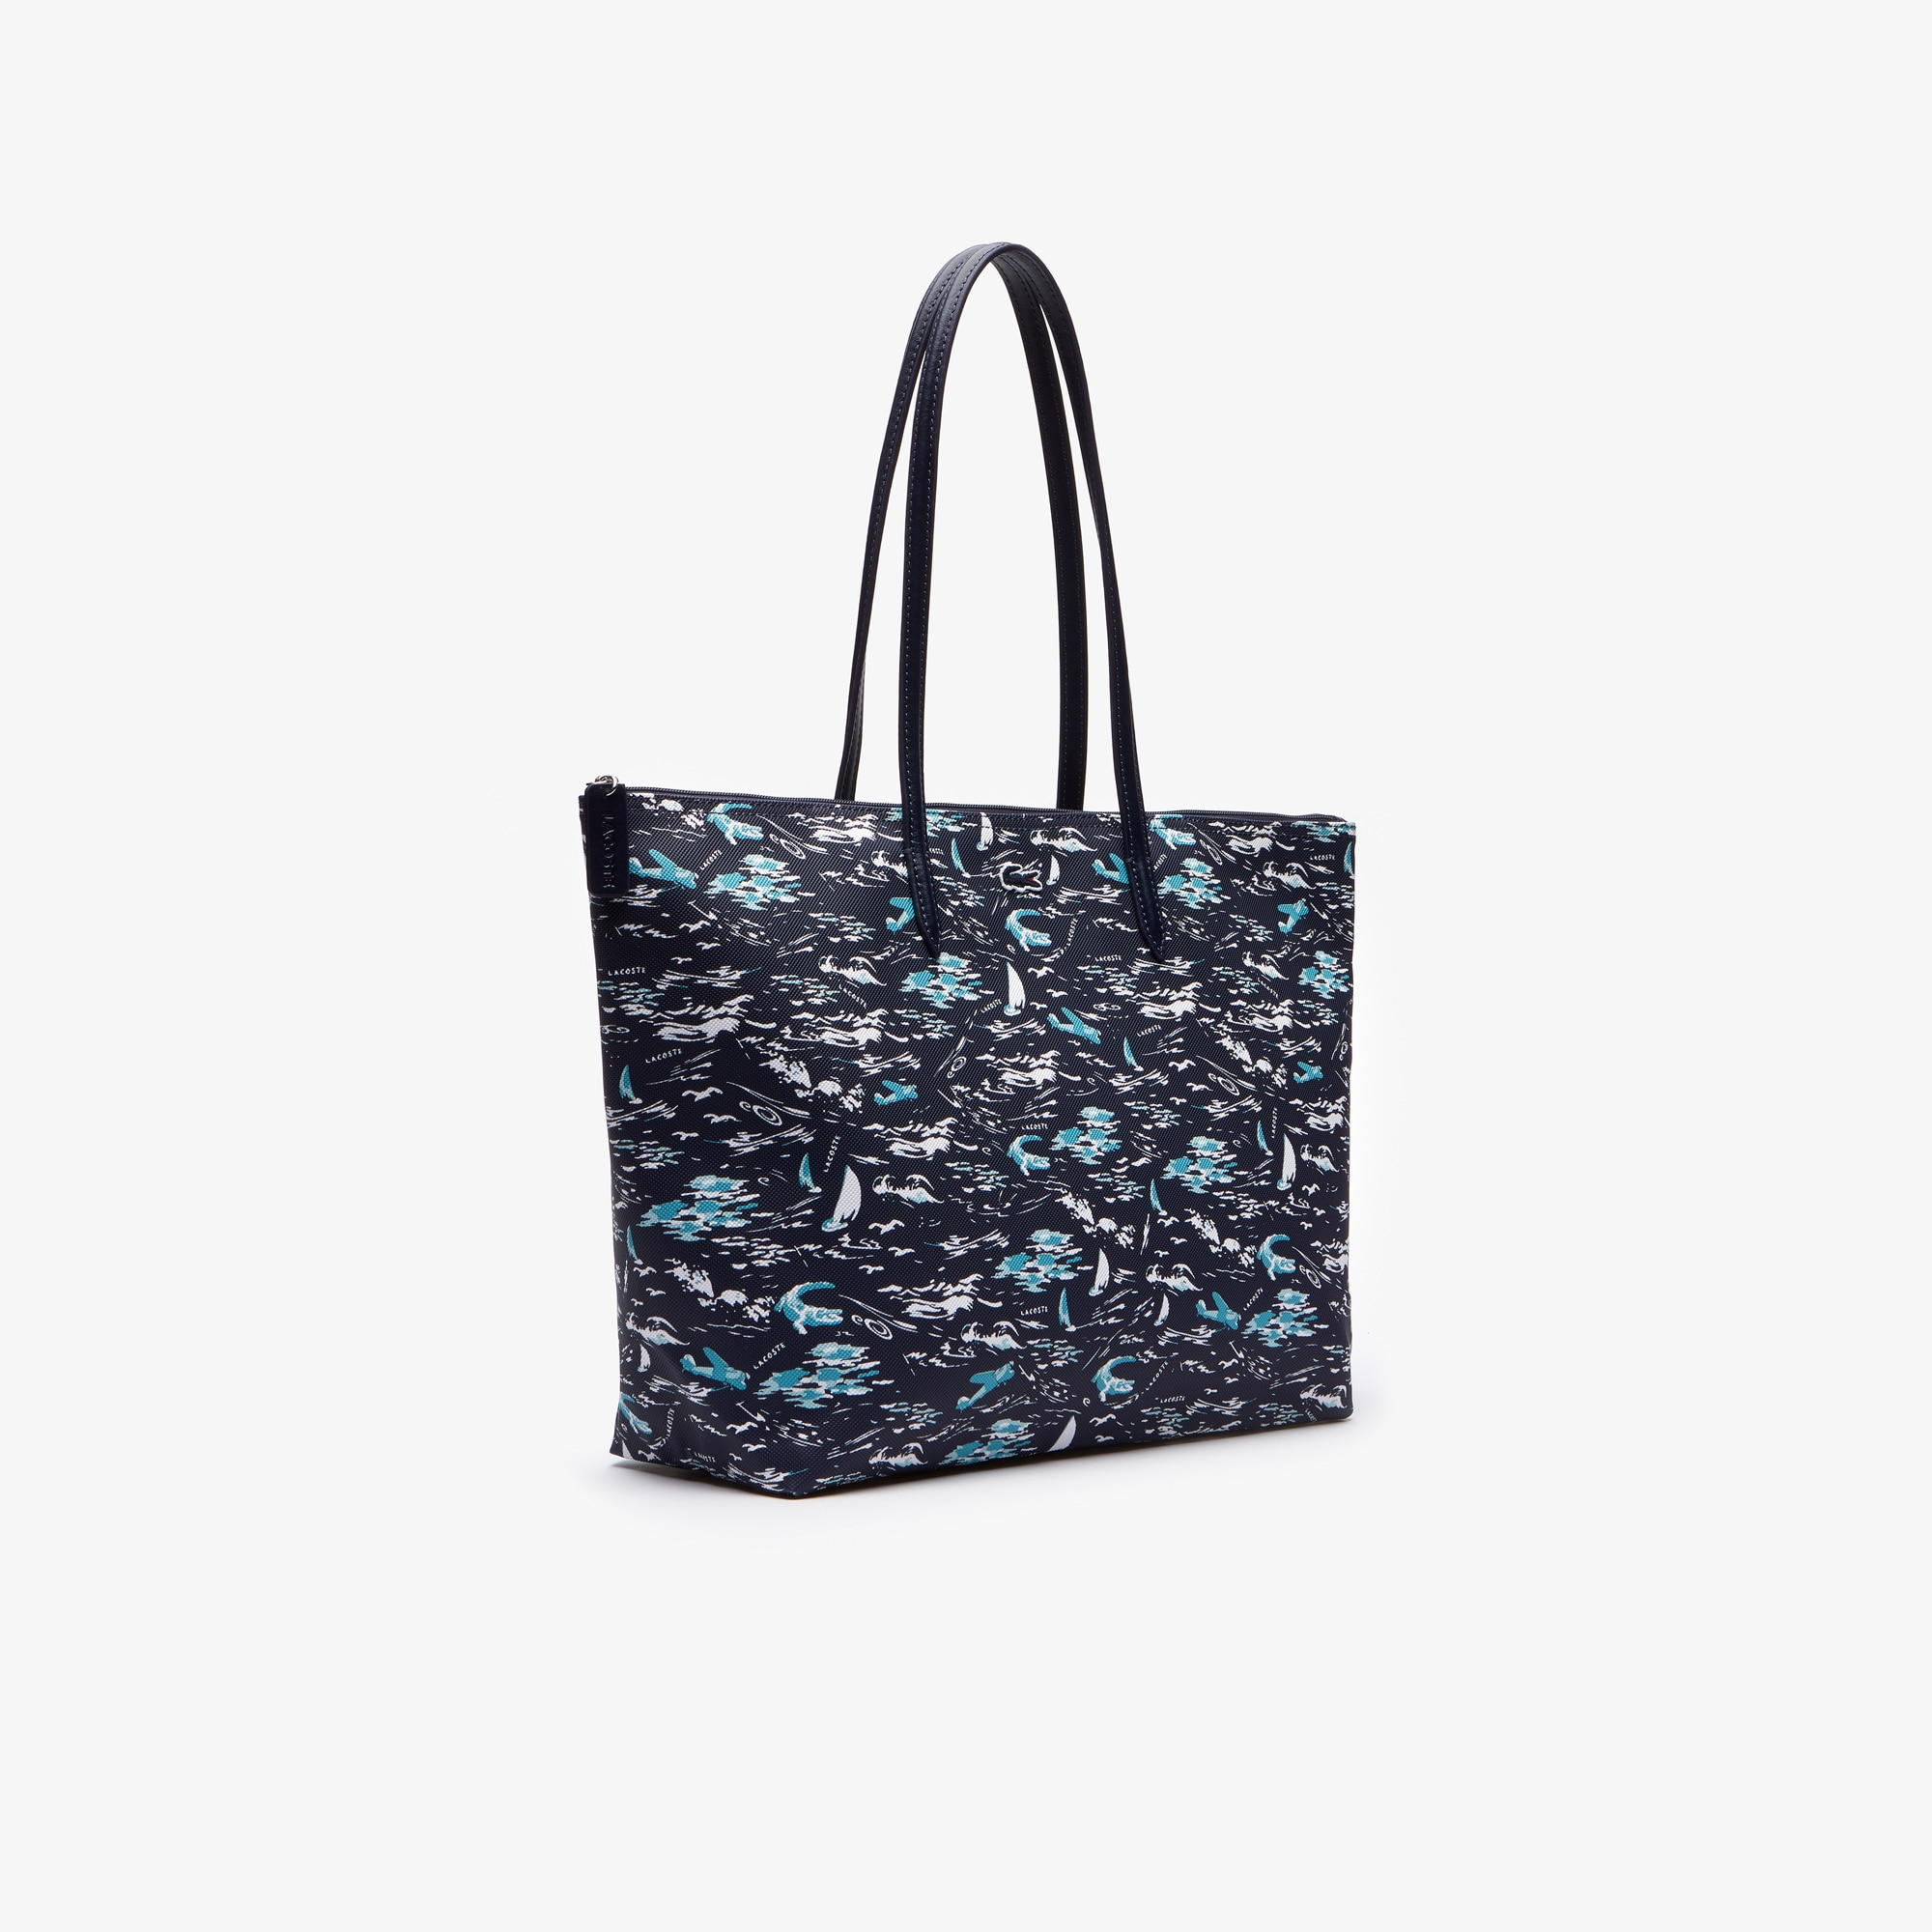 Women's L.12.12 Large Tote Bag